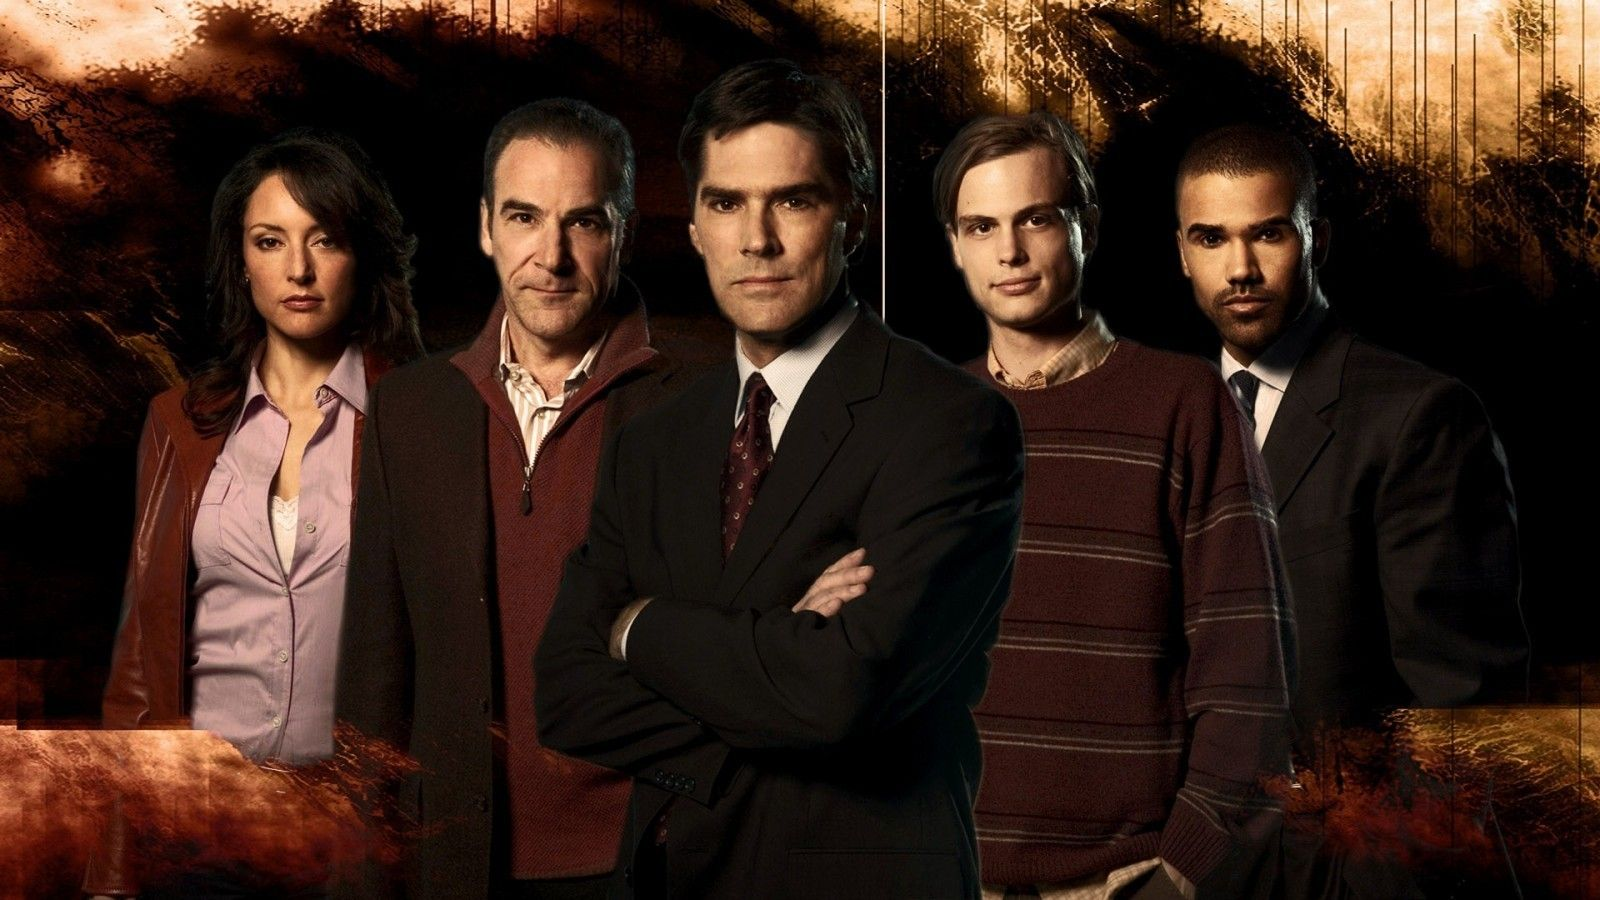 criminal minds pictures - Bing Images